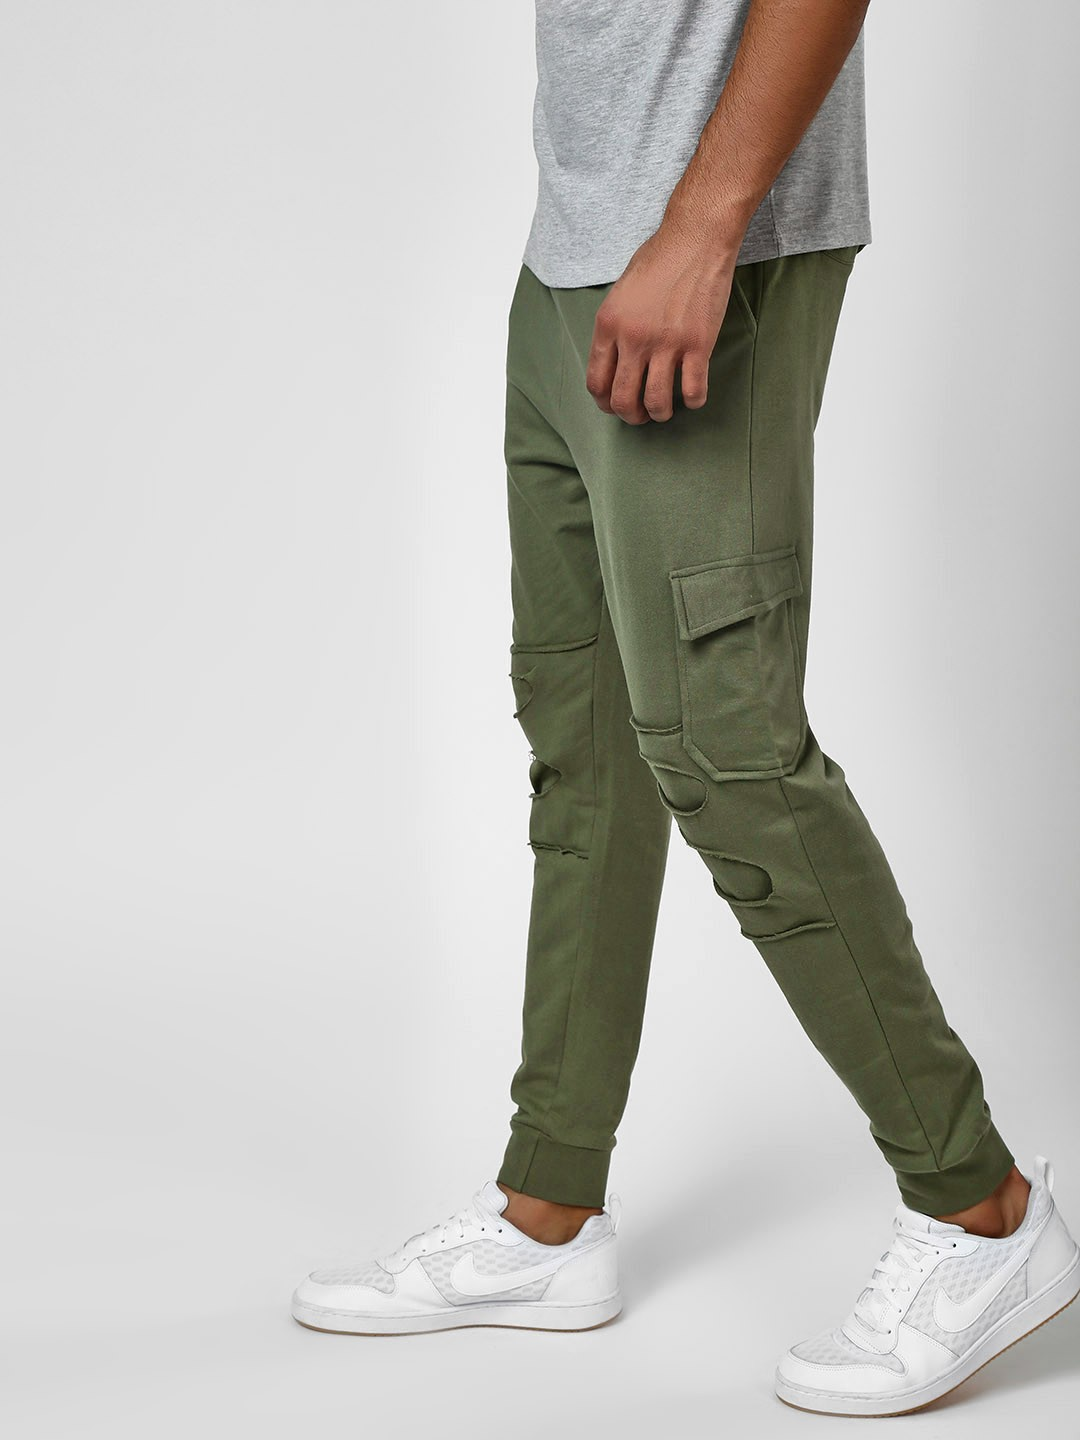 Styx & Stones Green Distressed Joggers With Drawcord 1